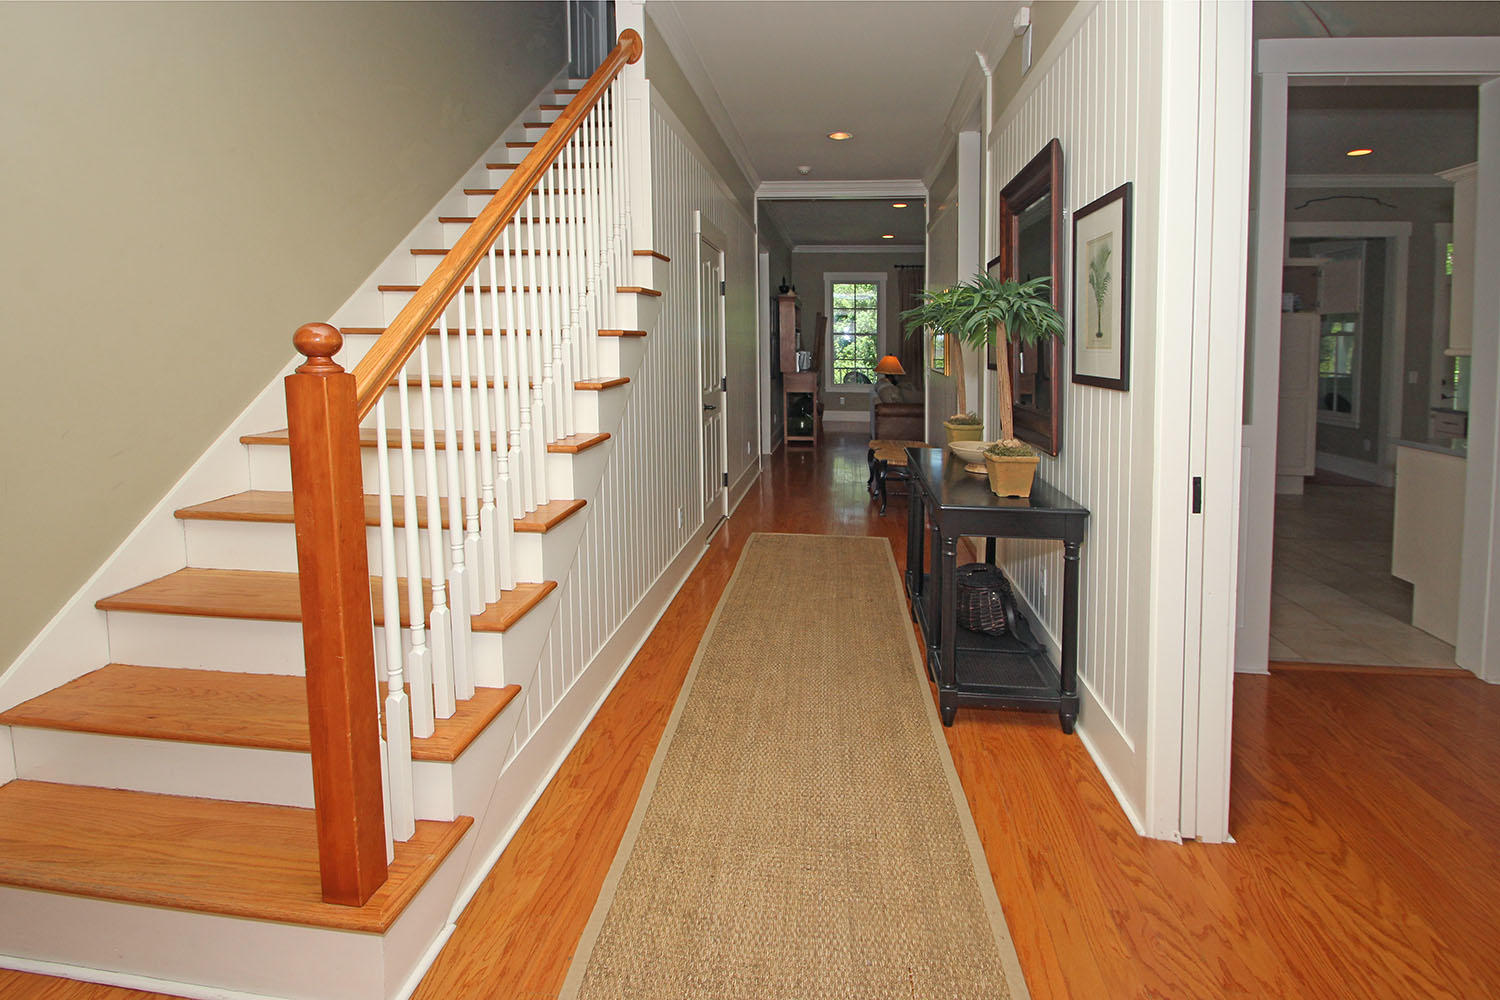 Foyer and stairway